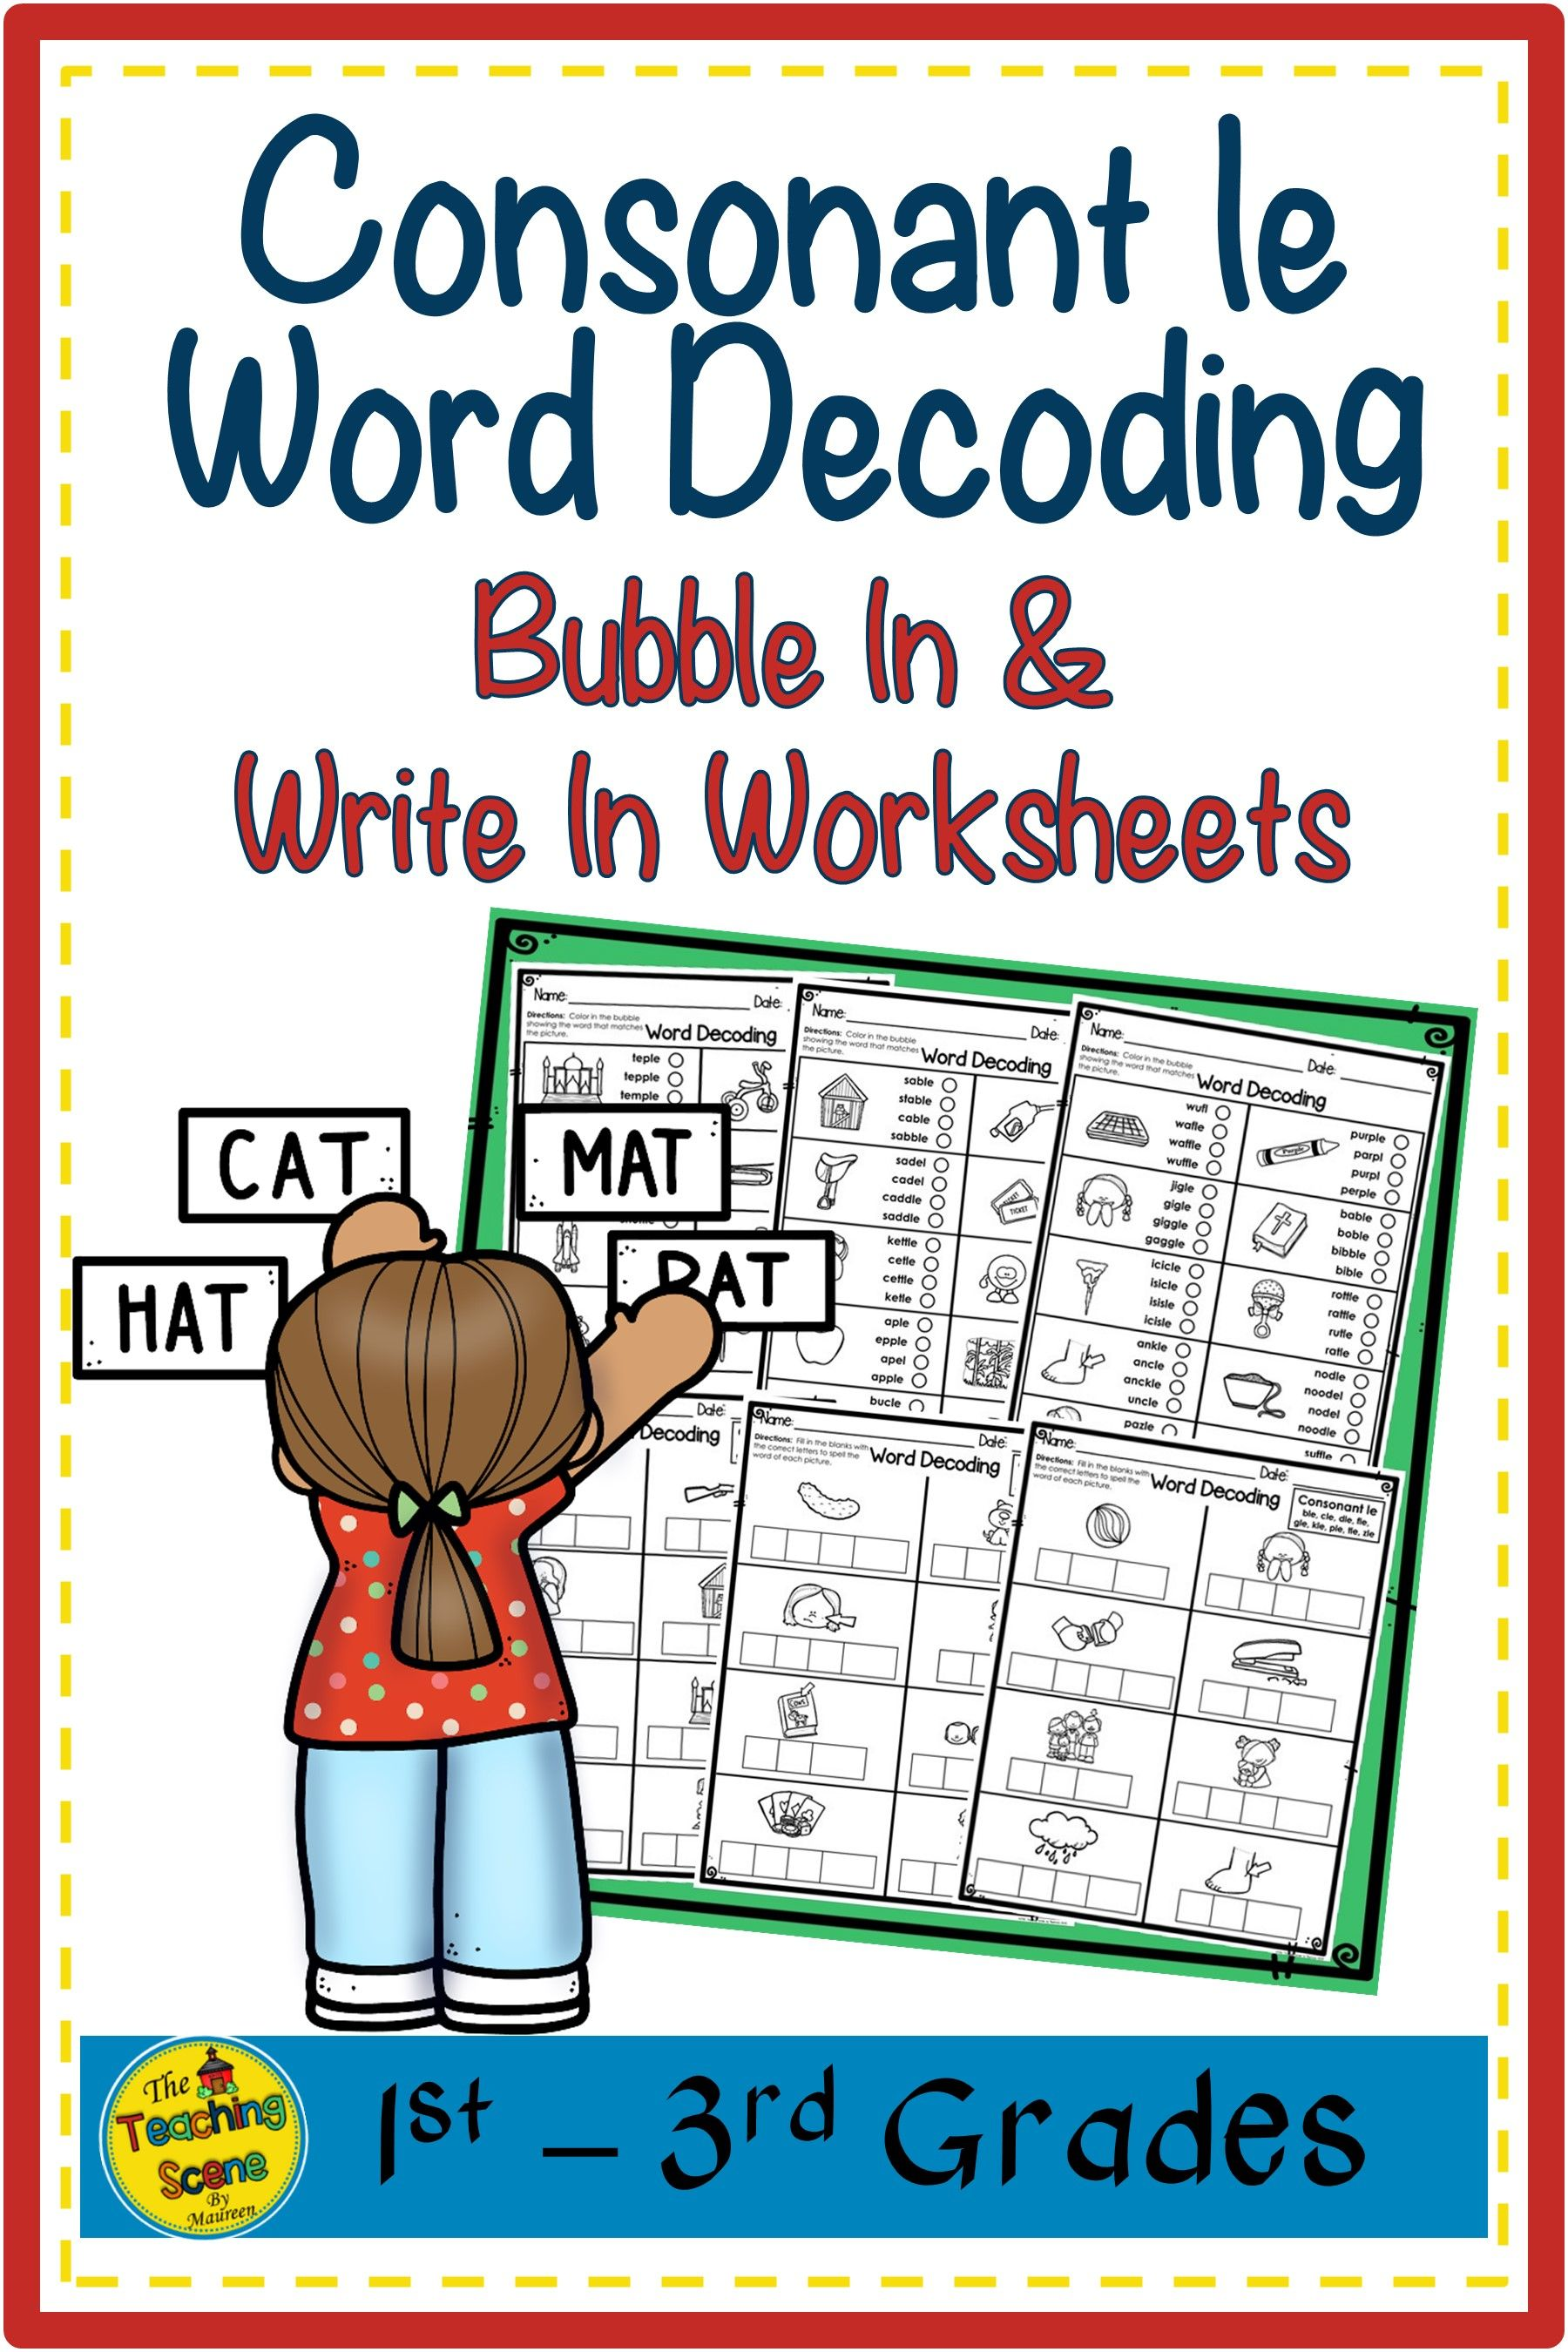 Consonant Le Worksheet   Printable Worksheets and Activities for Teachers [ 2700 x 1800 Pixel ]